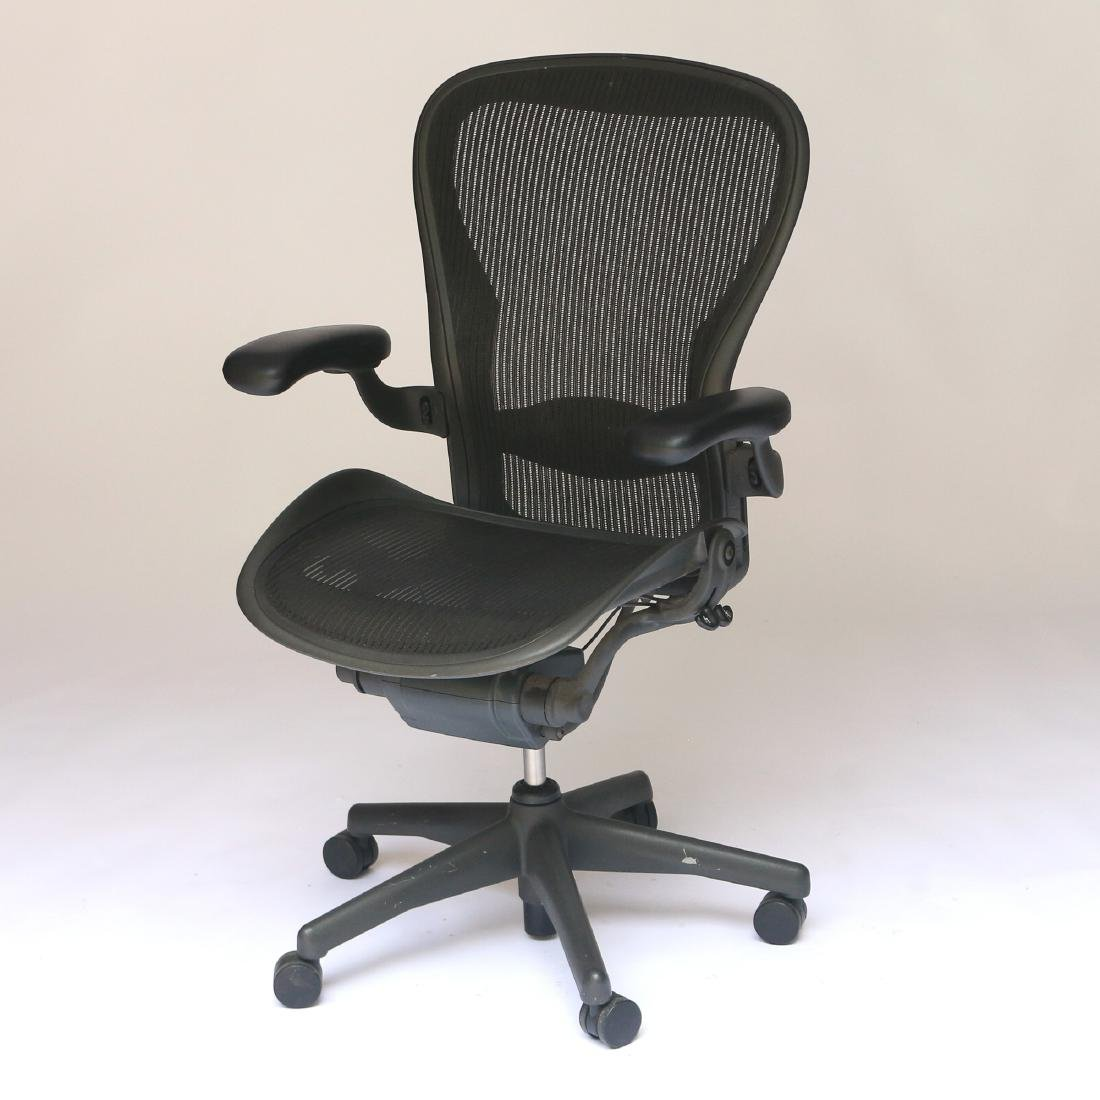 HERMAN MILLER AERON OFFICE CHAIR - 2